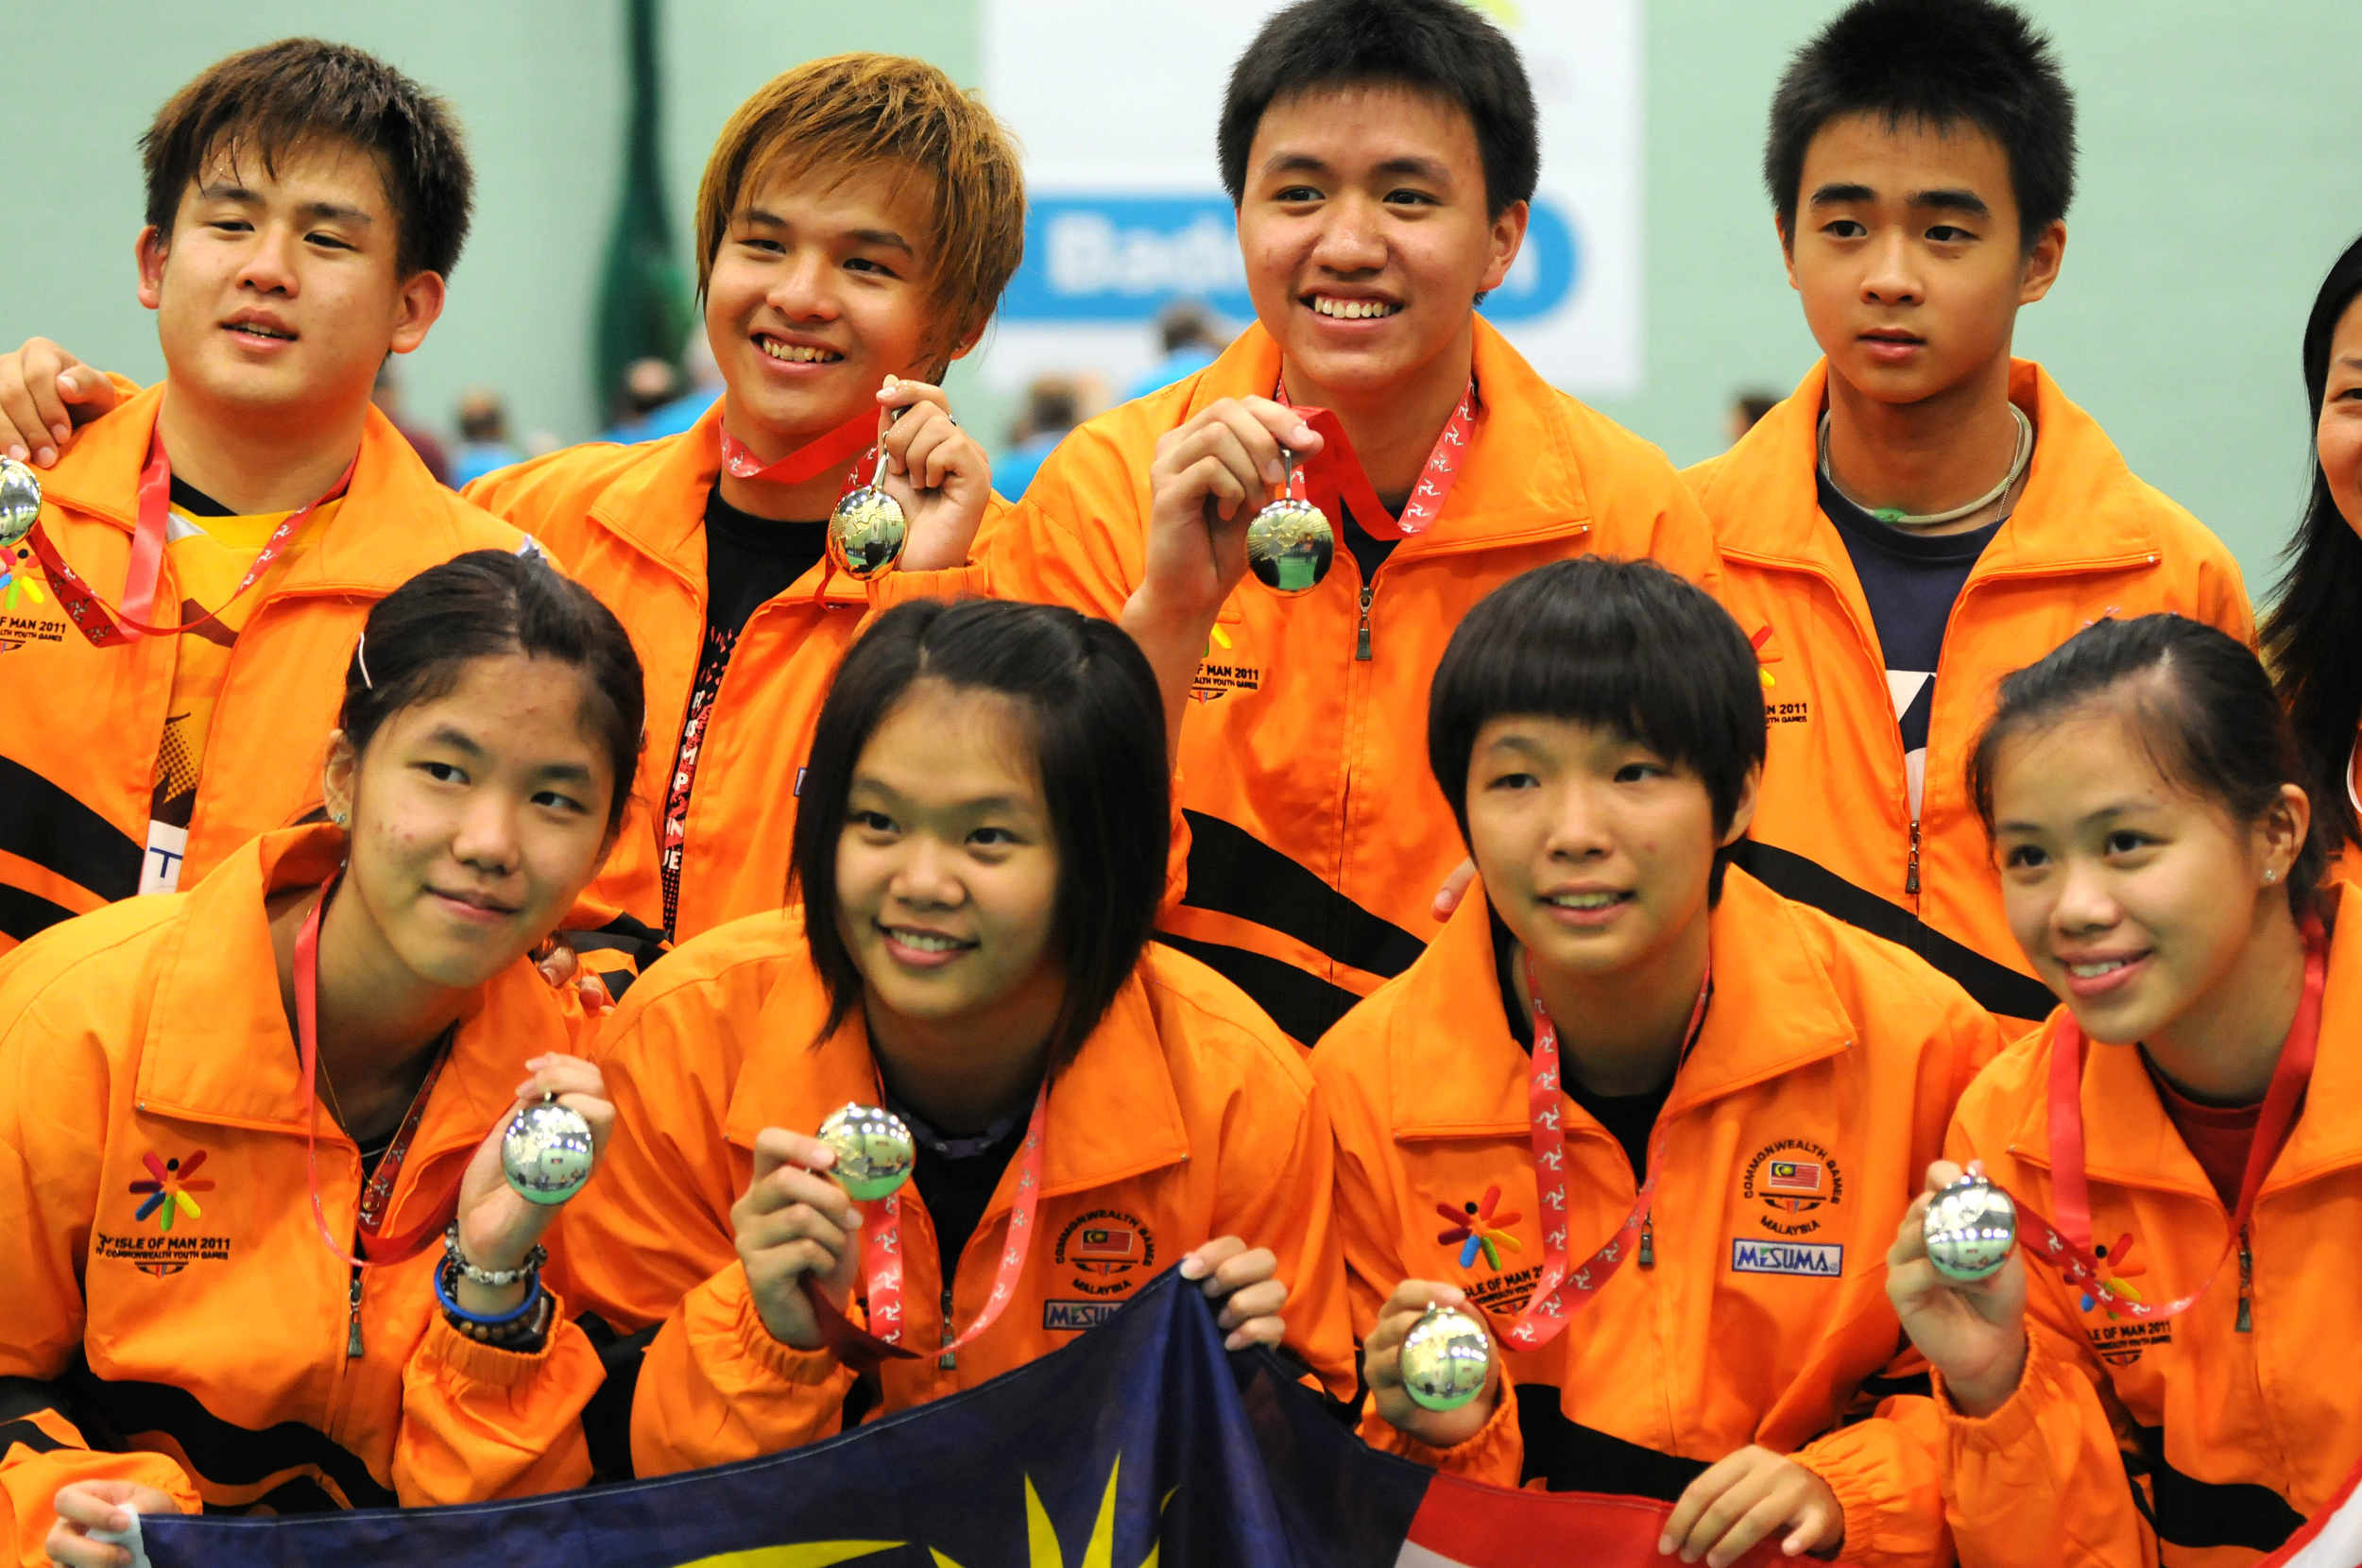 Members of the Malaysian Badminton Team celebrate a haul of medals at the 2011 Commonwealth Youth Games